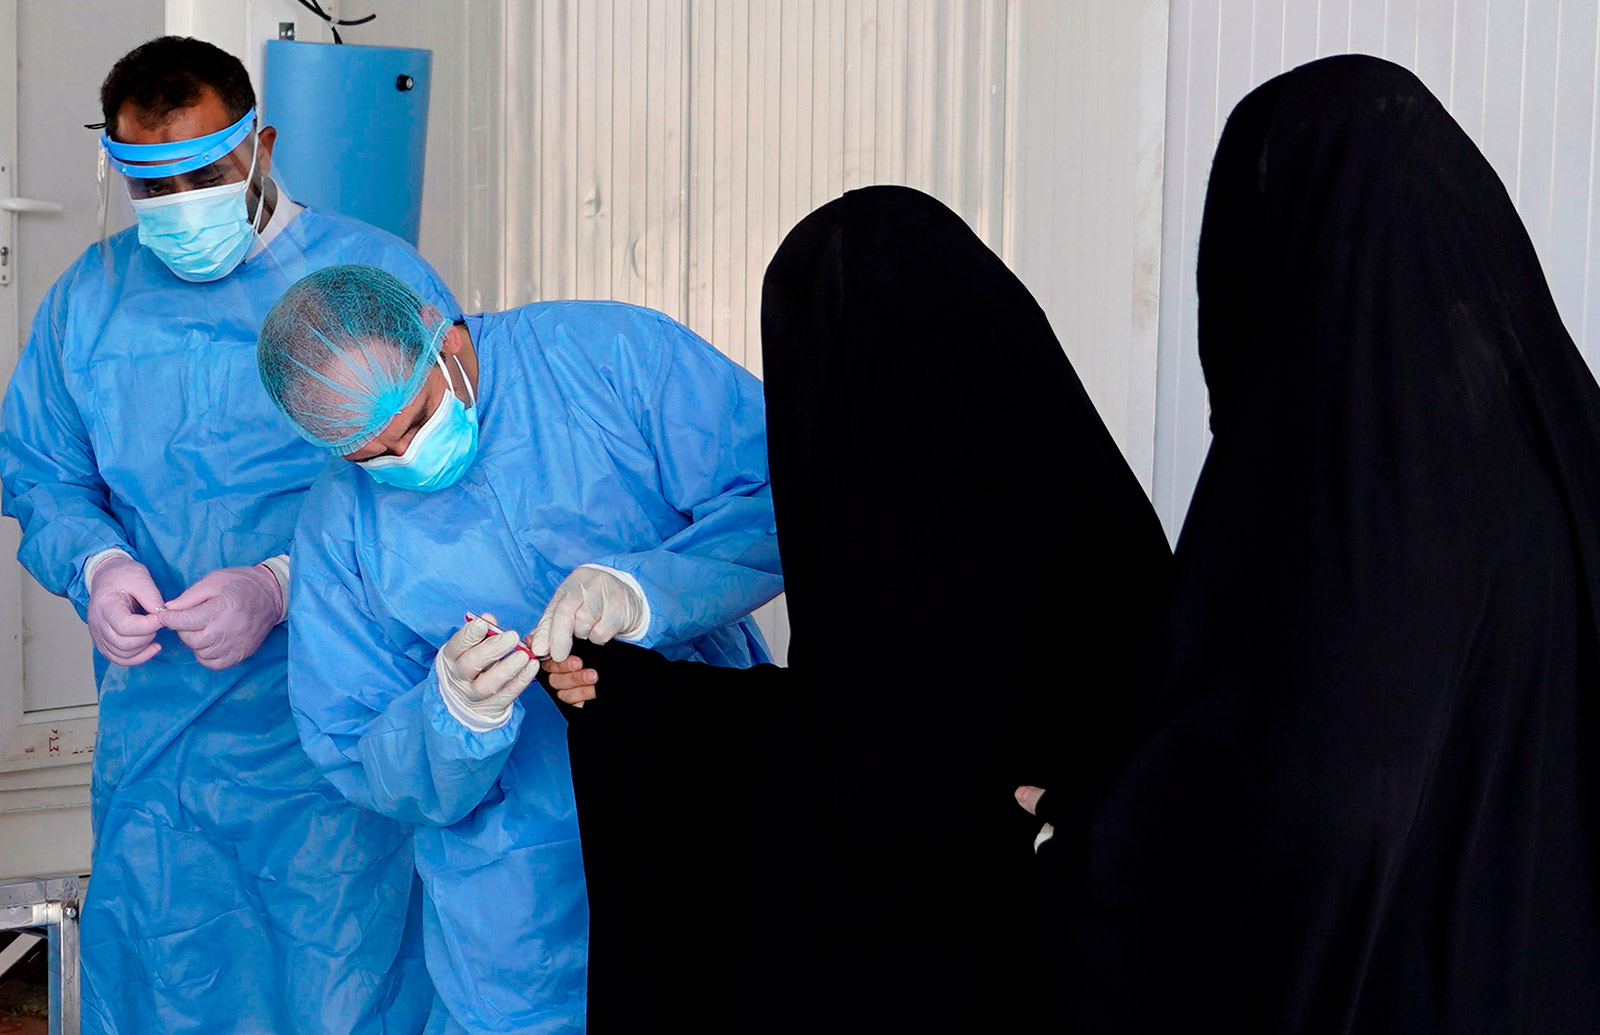 Coronavirus tests are administered at a facility in the central Iraqi city of Najaf on July 15.